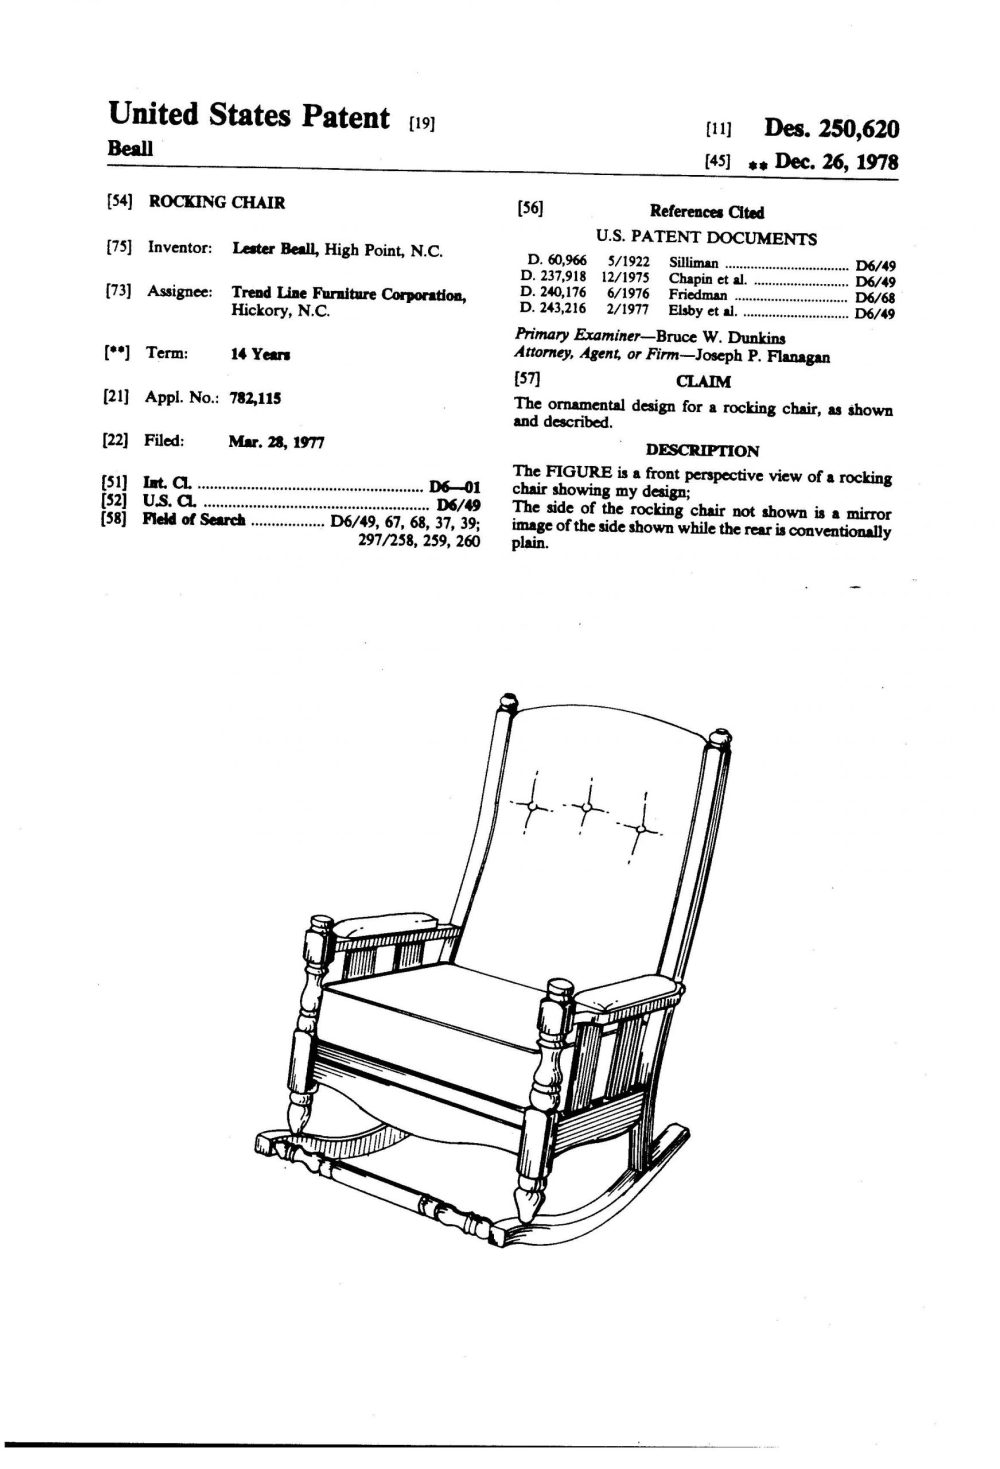 USD250620_Page_1